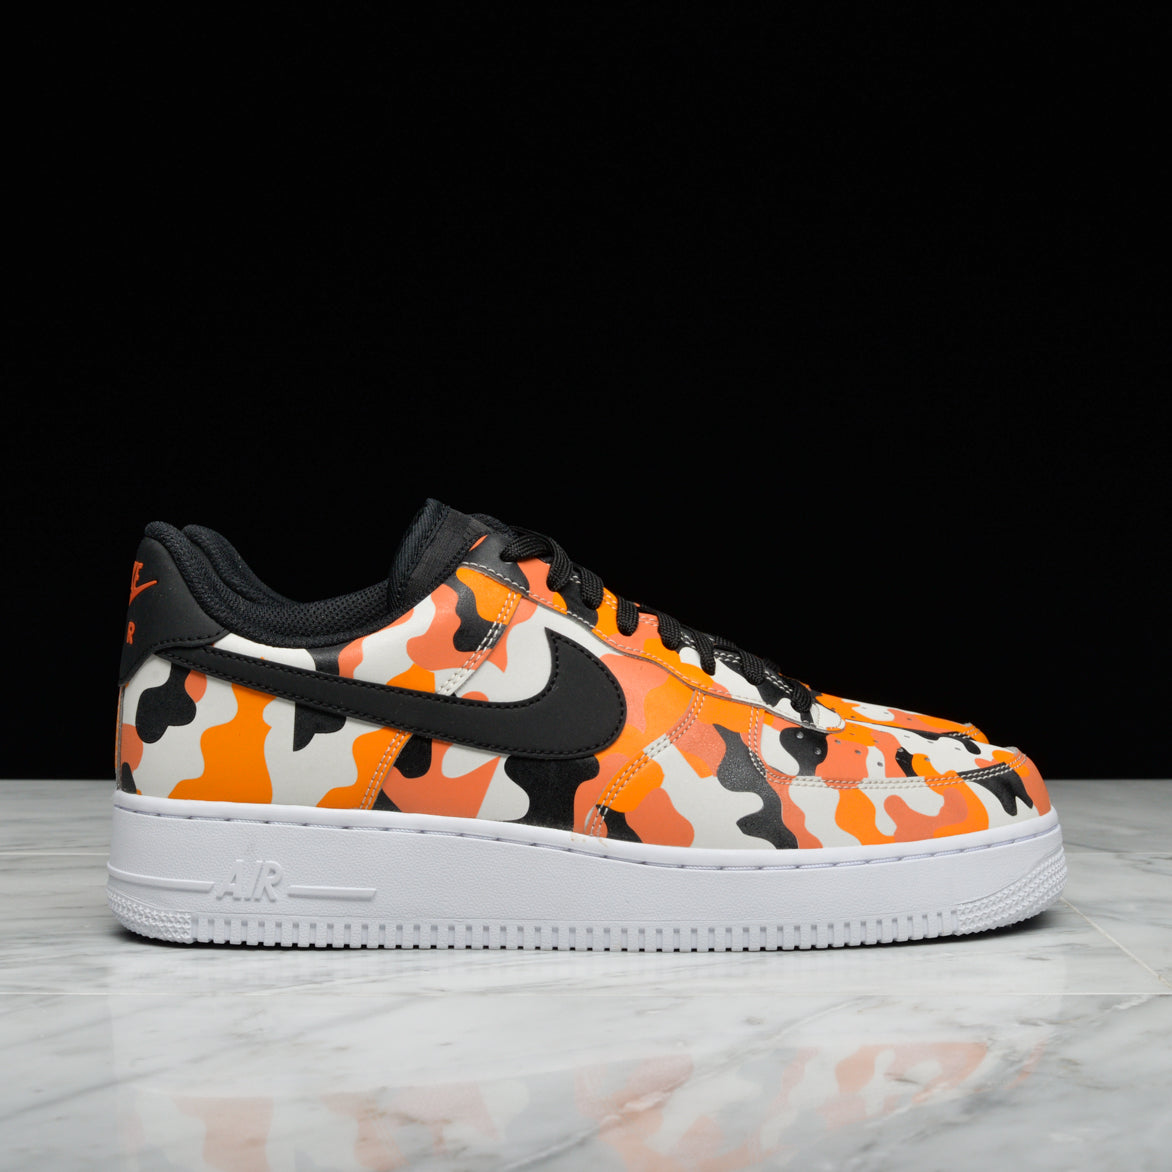 49e205da33655 Buy camo air force 1 07 > up to 75% Discounts